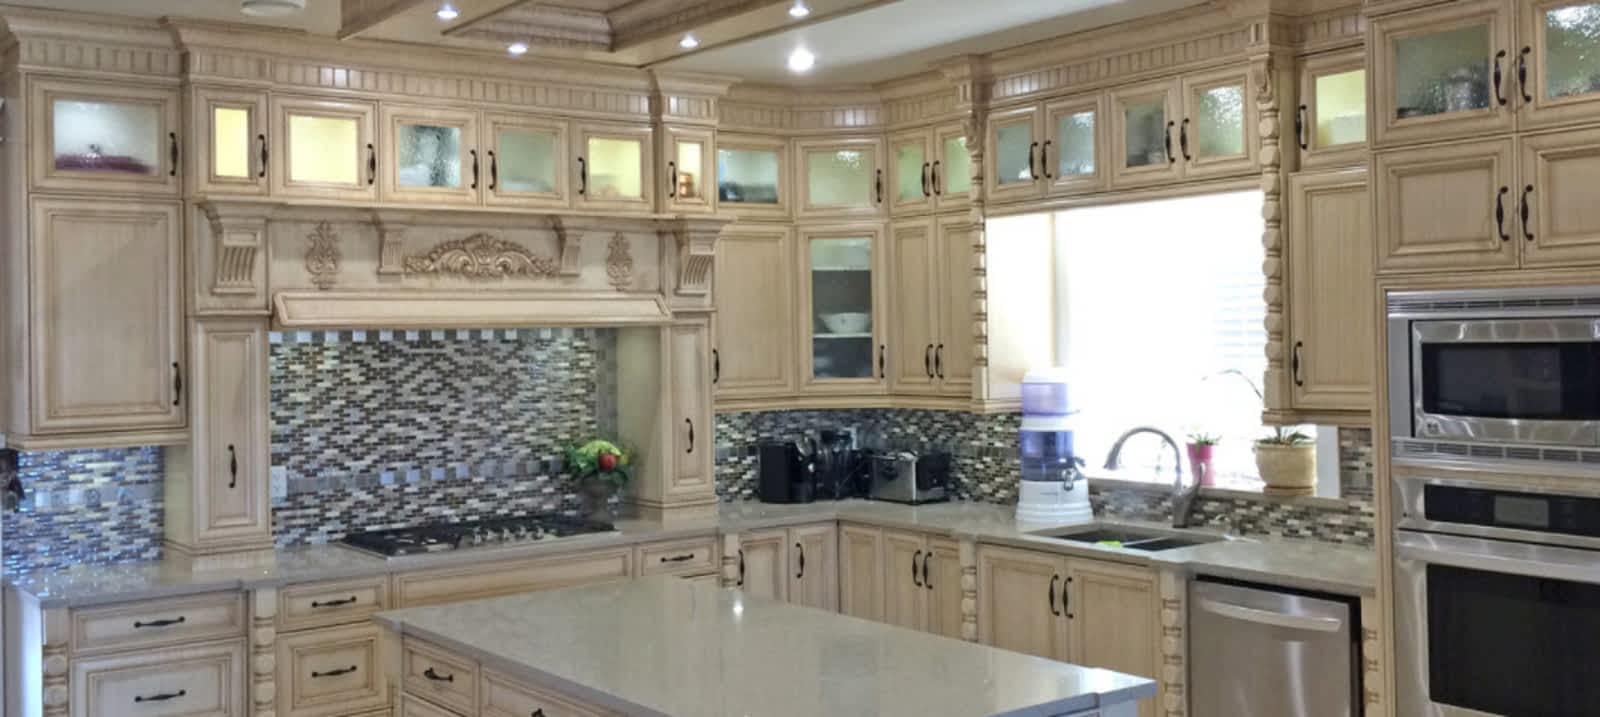 Bc New Style Kitchen Cabinet Opening Hours 104 7750 128 St